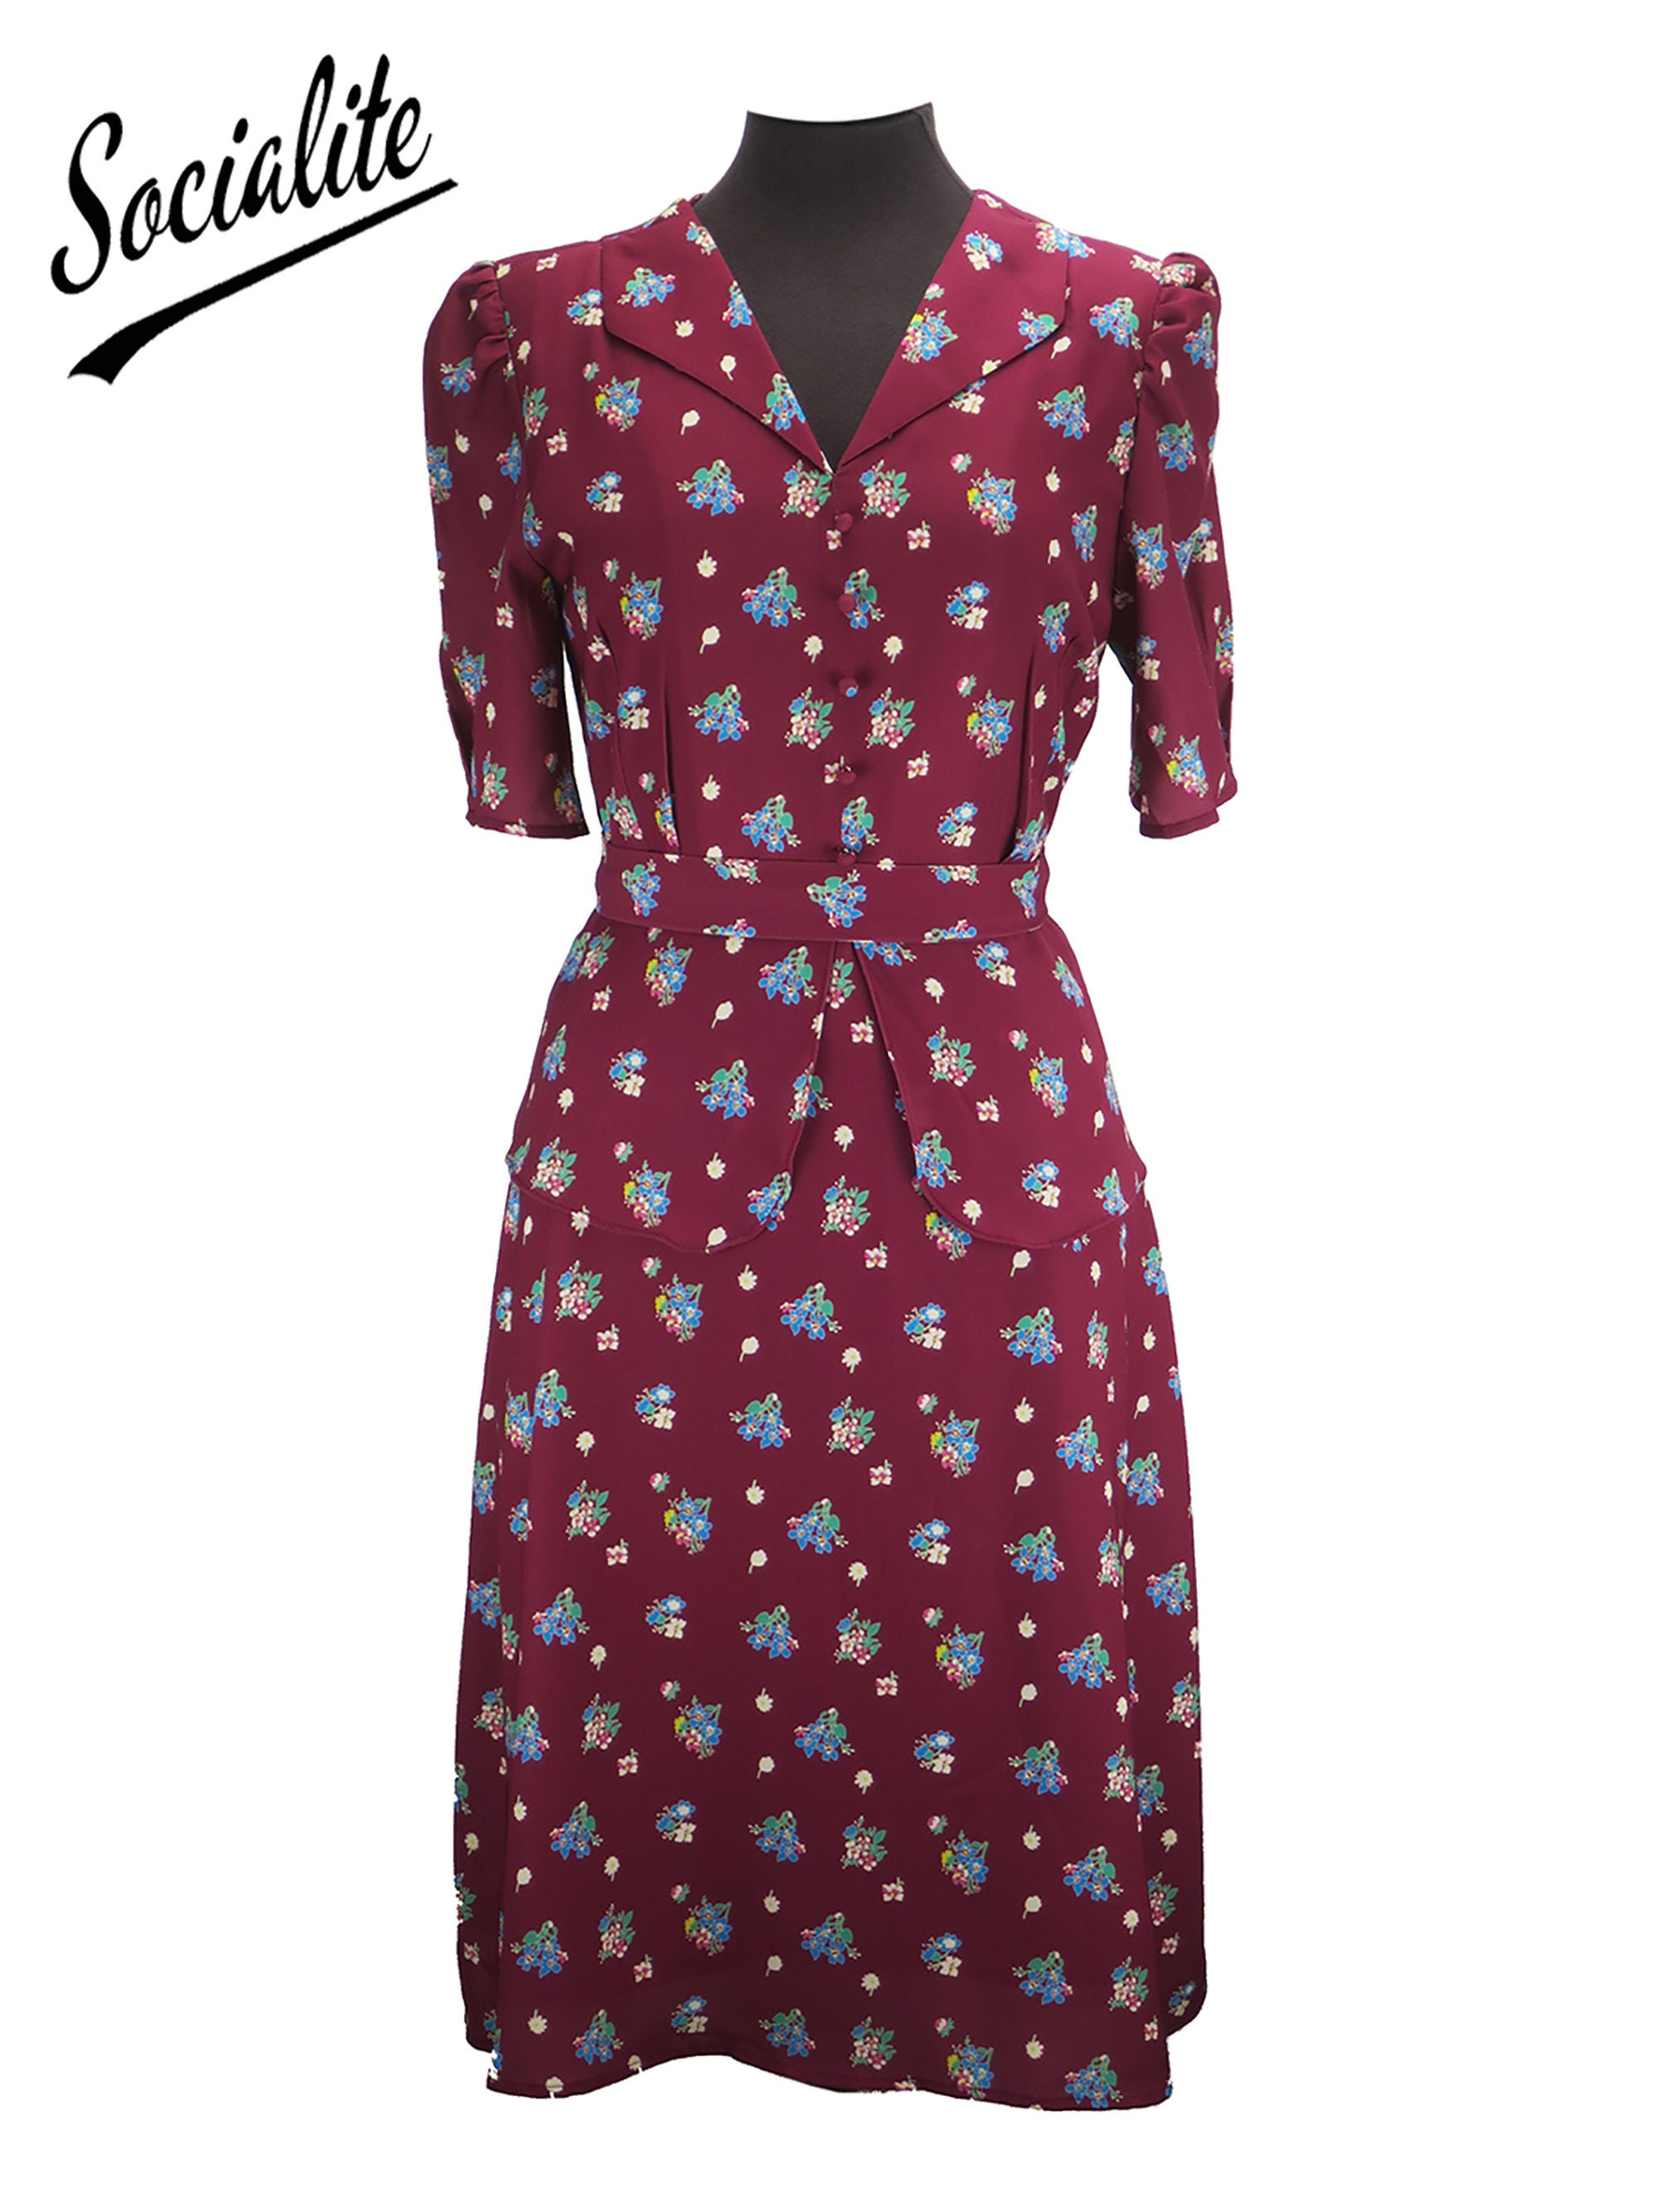 1940s Dresses | 40s Dress, Swing Dress Revival Socialite Replica 1940s Vintage Floral Symphony Peplum Dress $113.99 AT vintagedancer.com